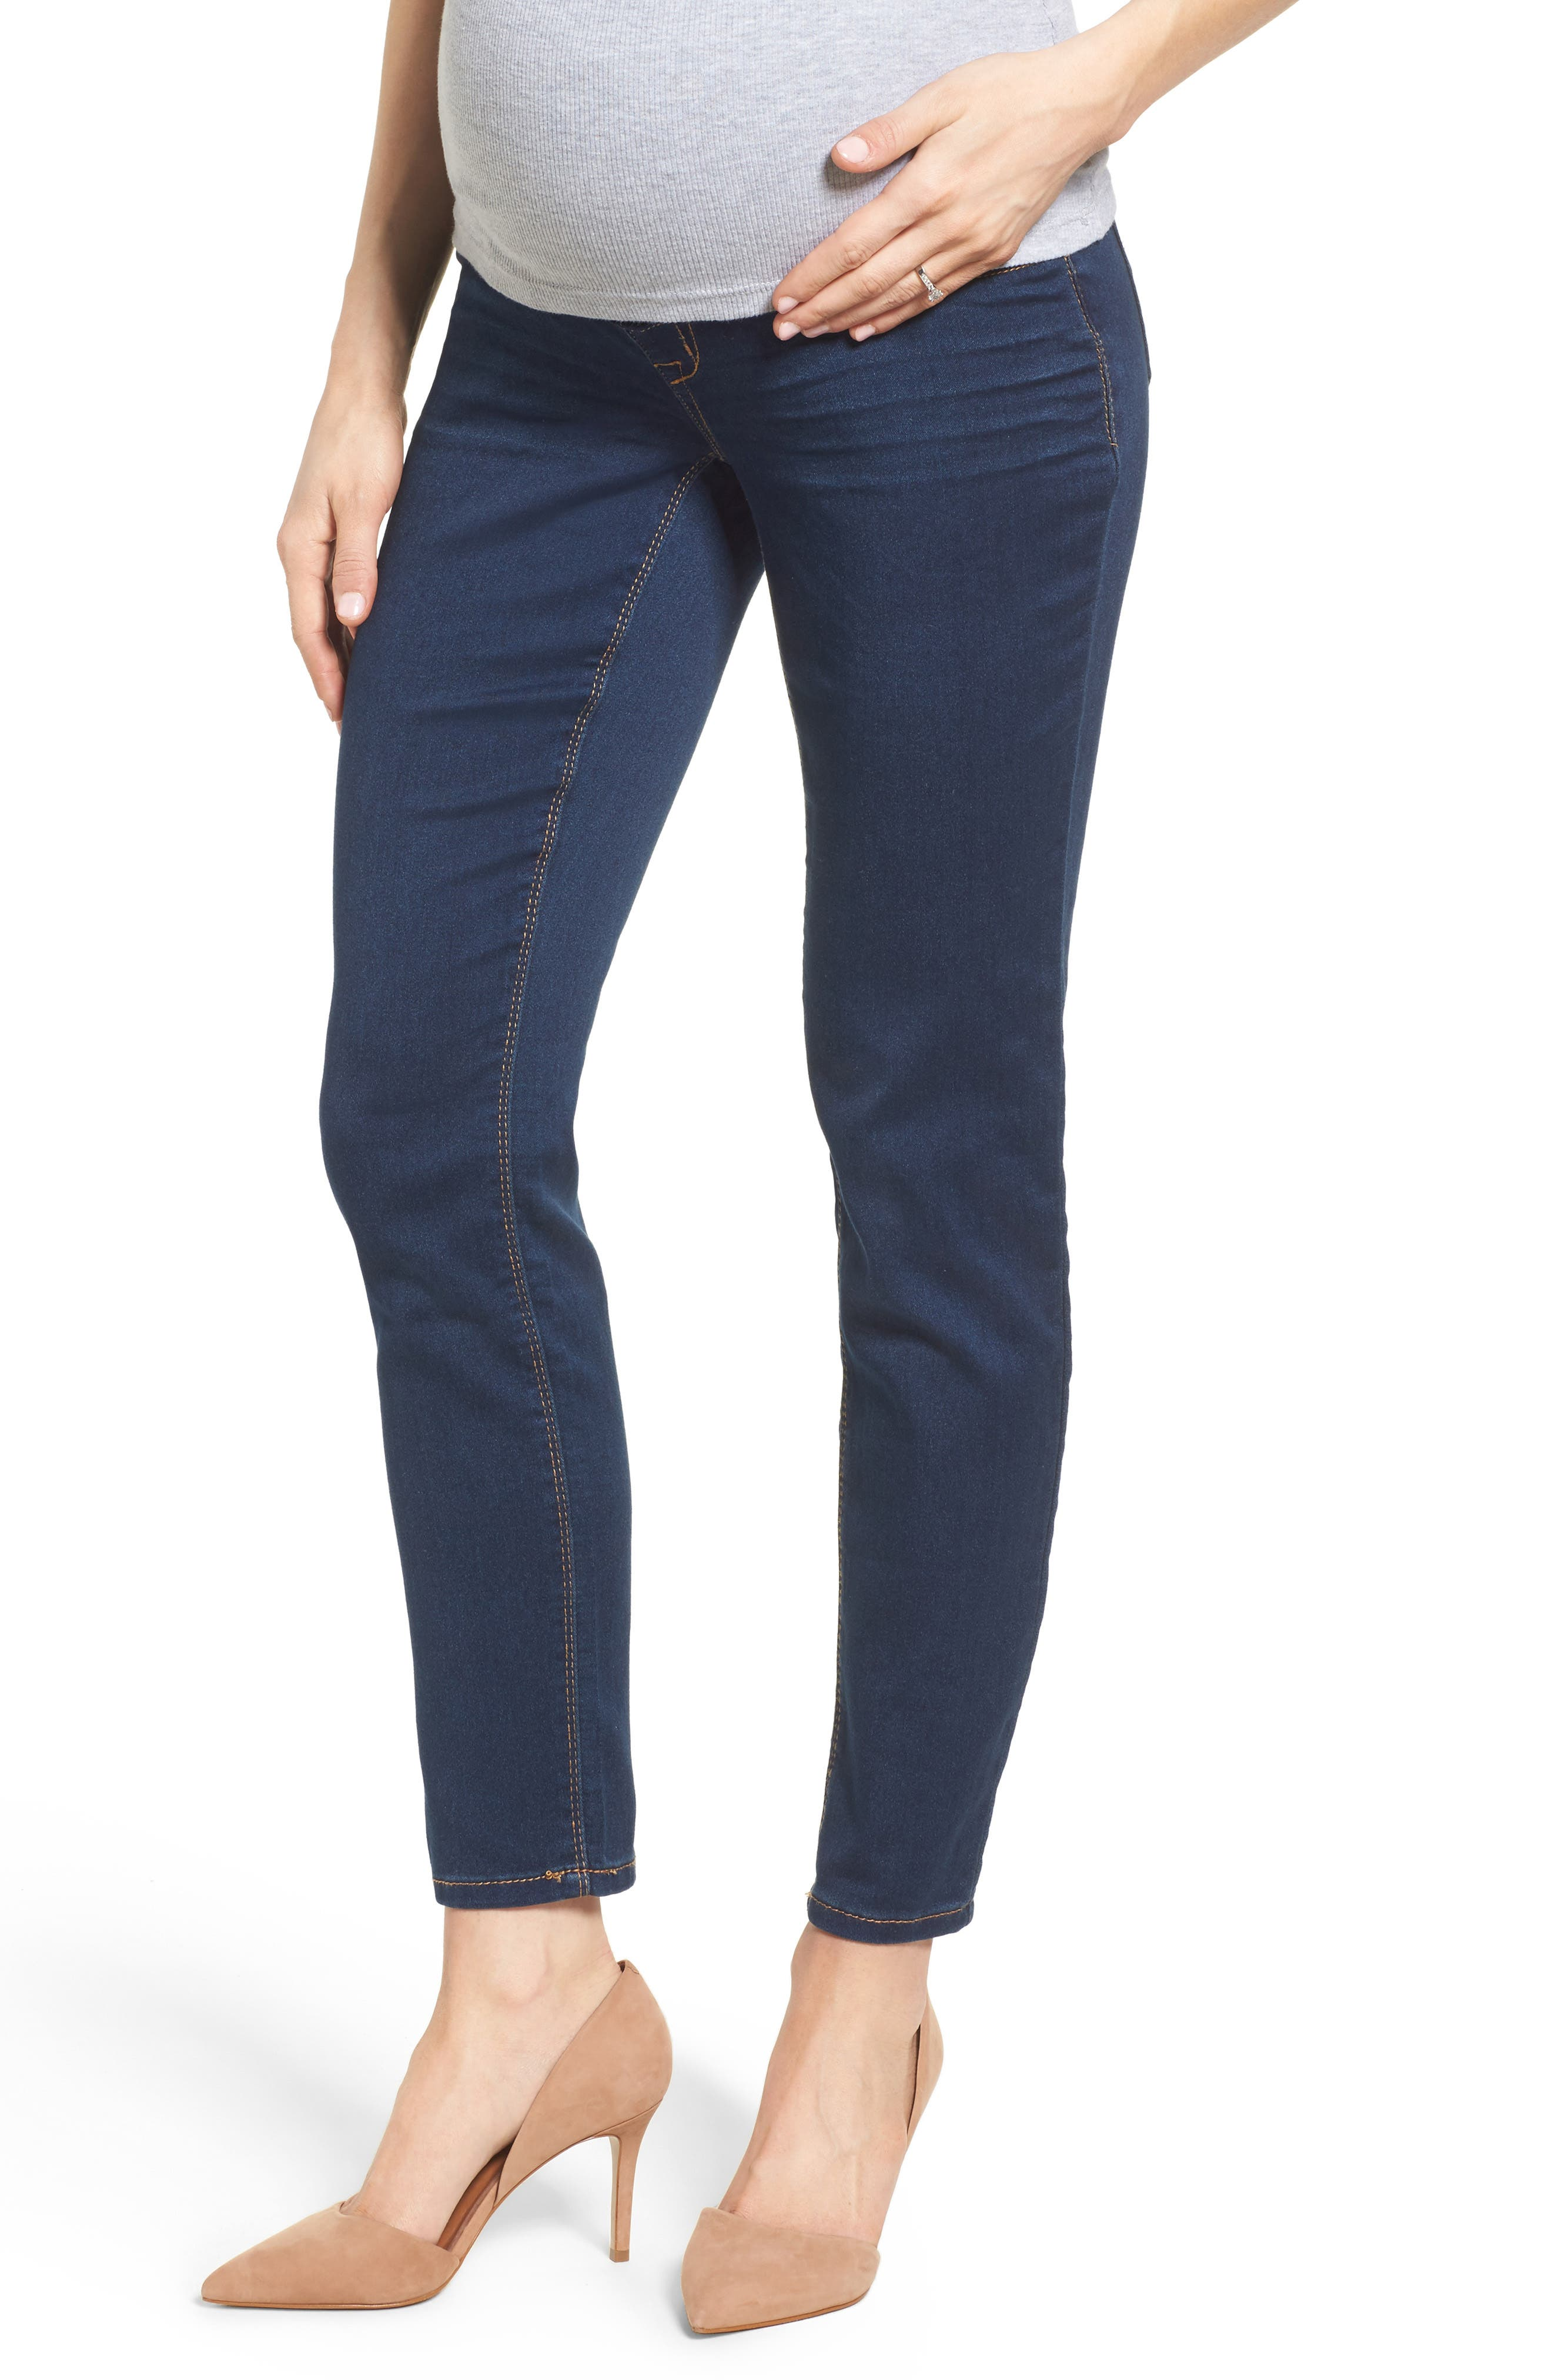 Butter Maternity Skinny Jeans,                             Main thumbnail 1, color,                             400